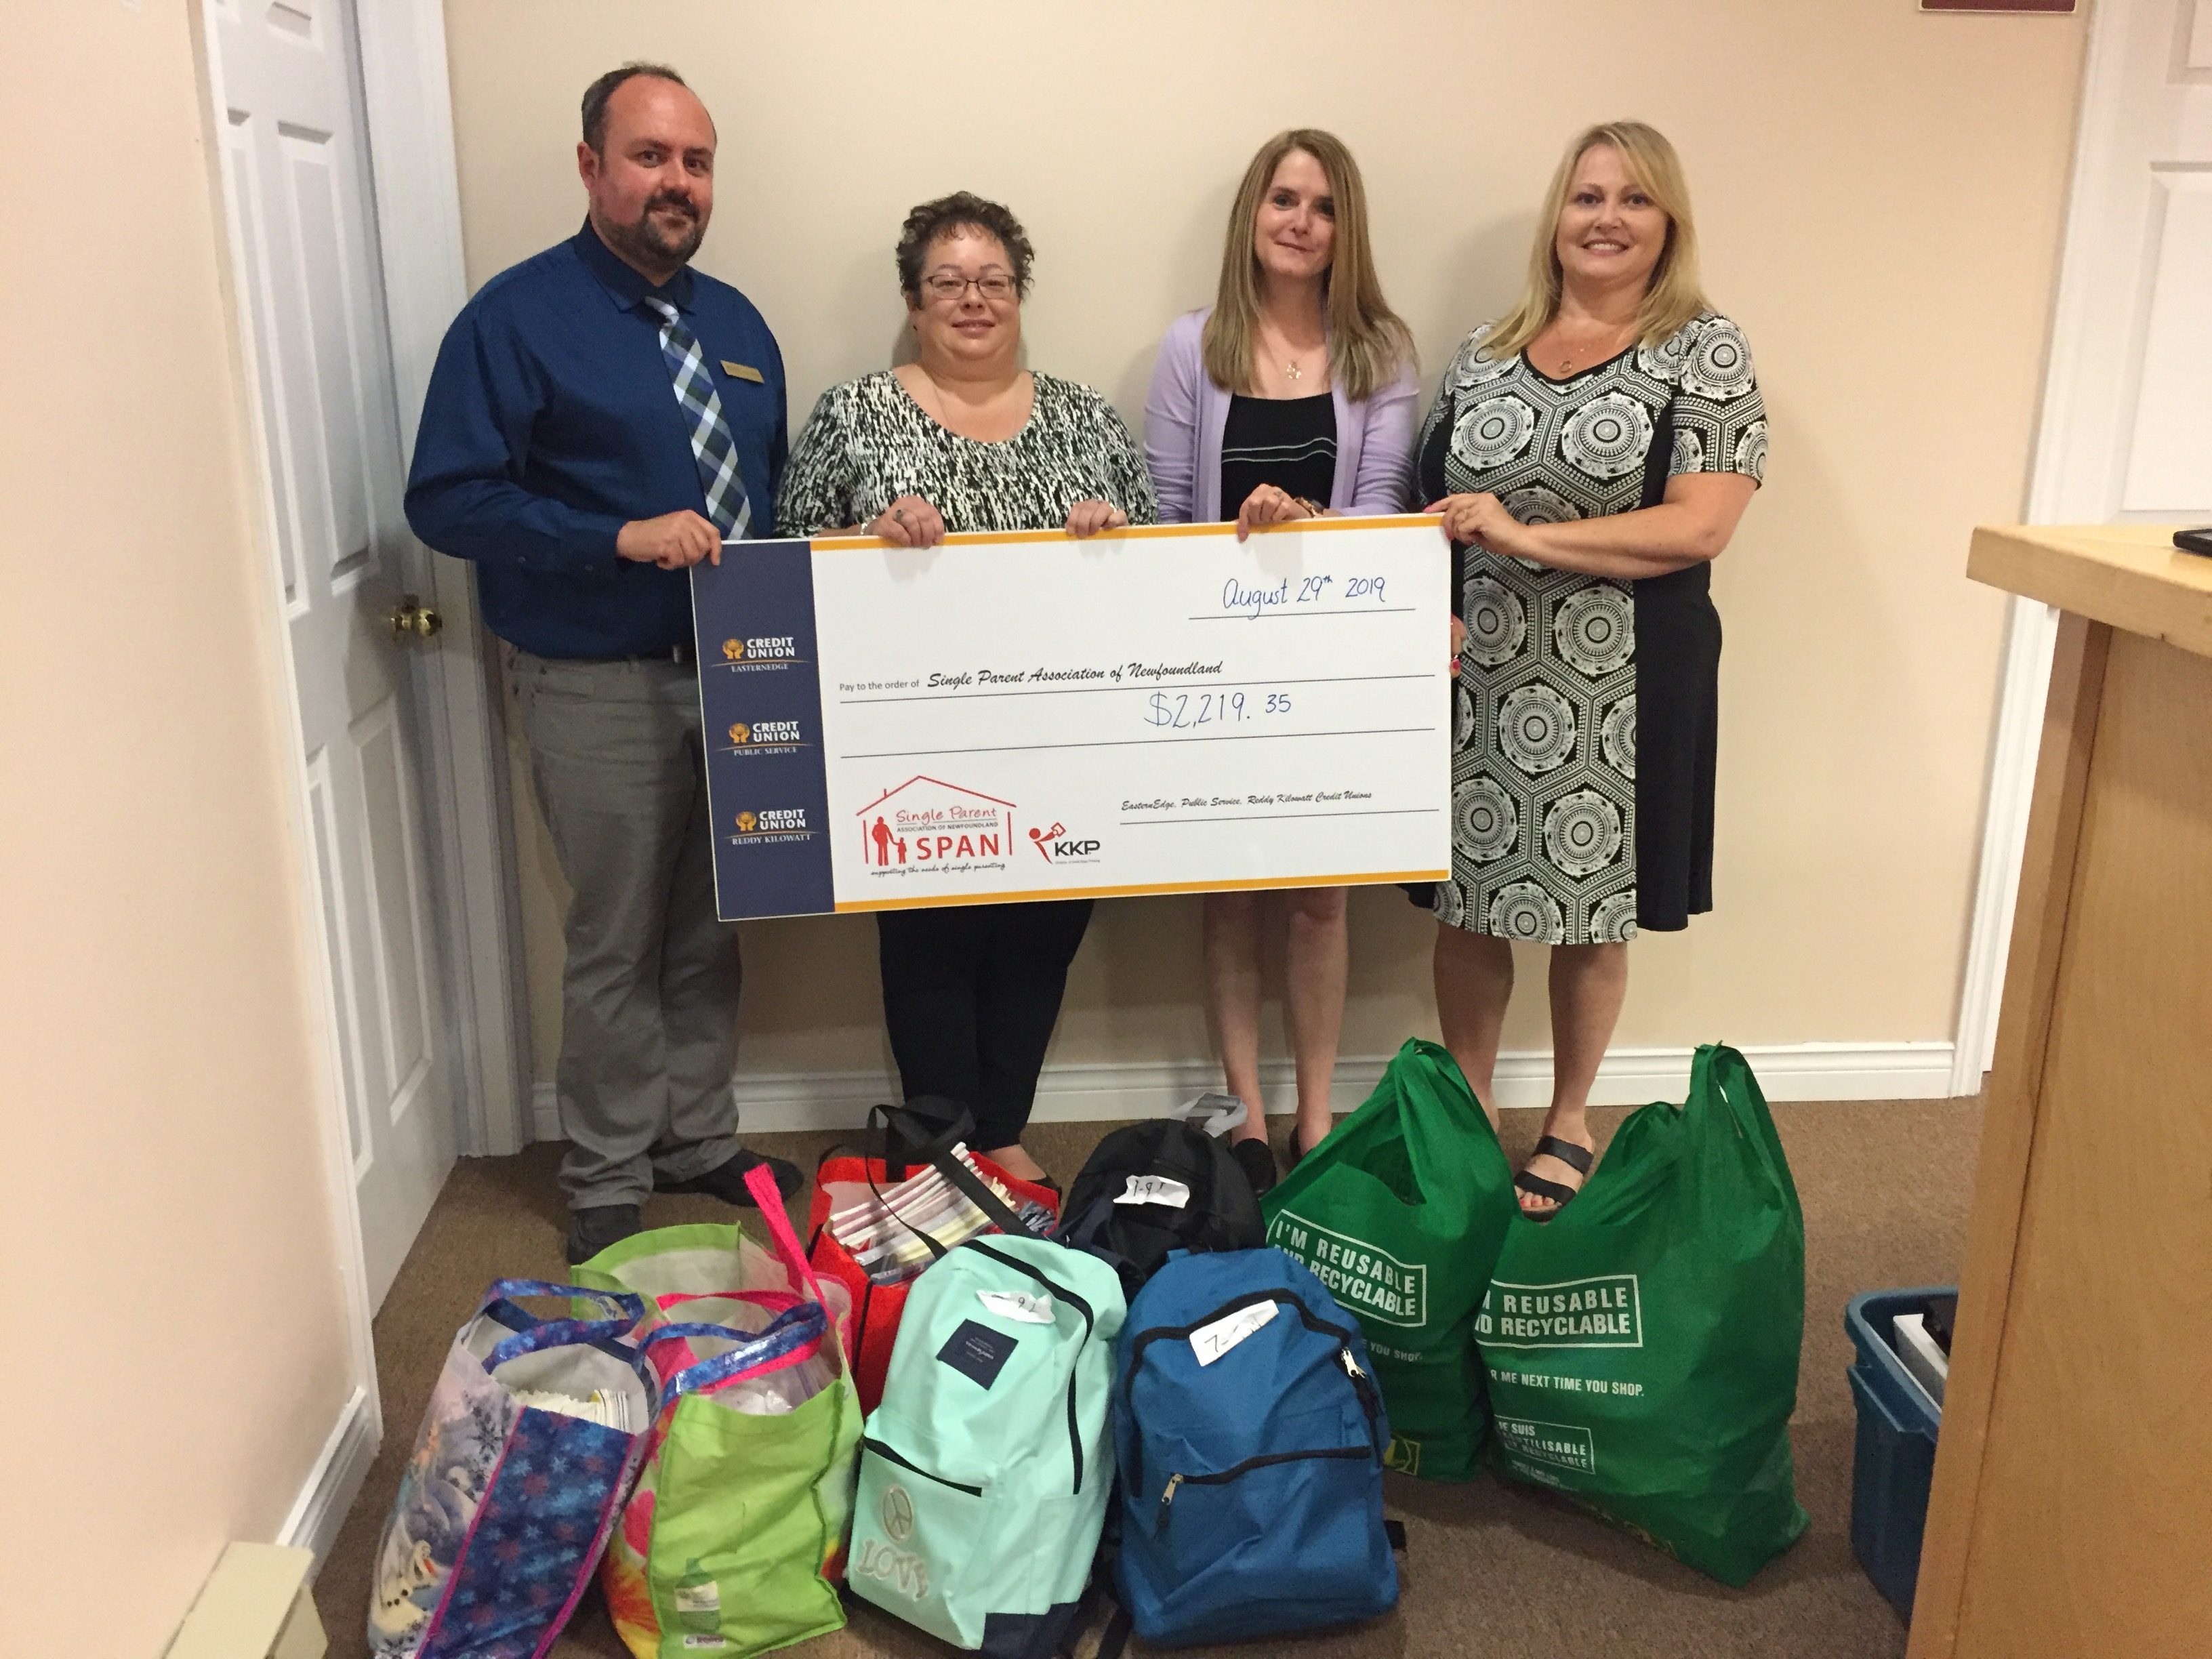 Public Service Credit Union along with Eastern Edge Credit Union and Reddy Kilowatt Credit Union help support Kids Back to School by raising $2,219 as well as school supplies. Many thanks to all three CUs and its members for their support.